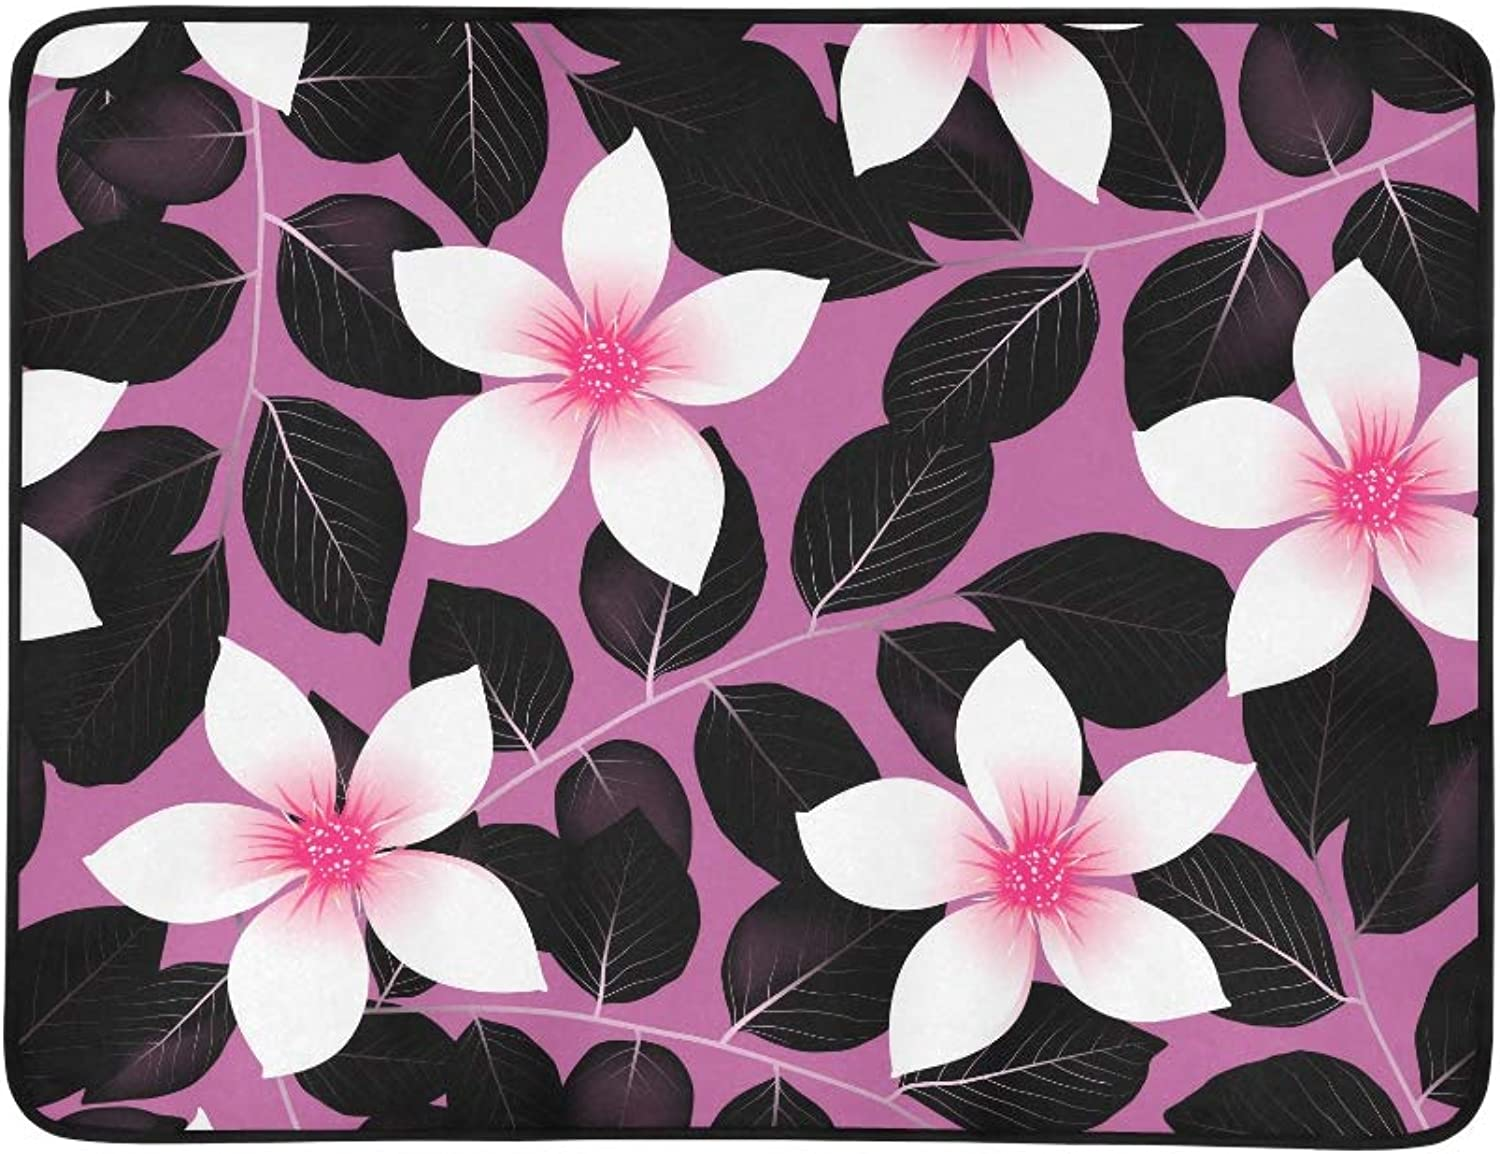 Tropical Pink Hibiscus Flowers with Black Leaves Pattern Portable and Foldable Blanket Mat 60x78 Inch Handy Mat for Camping Picnic Beach Indoor Outdoor Travel